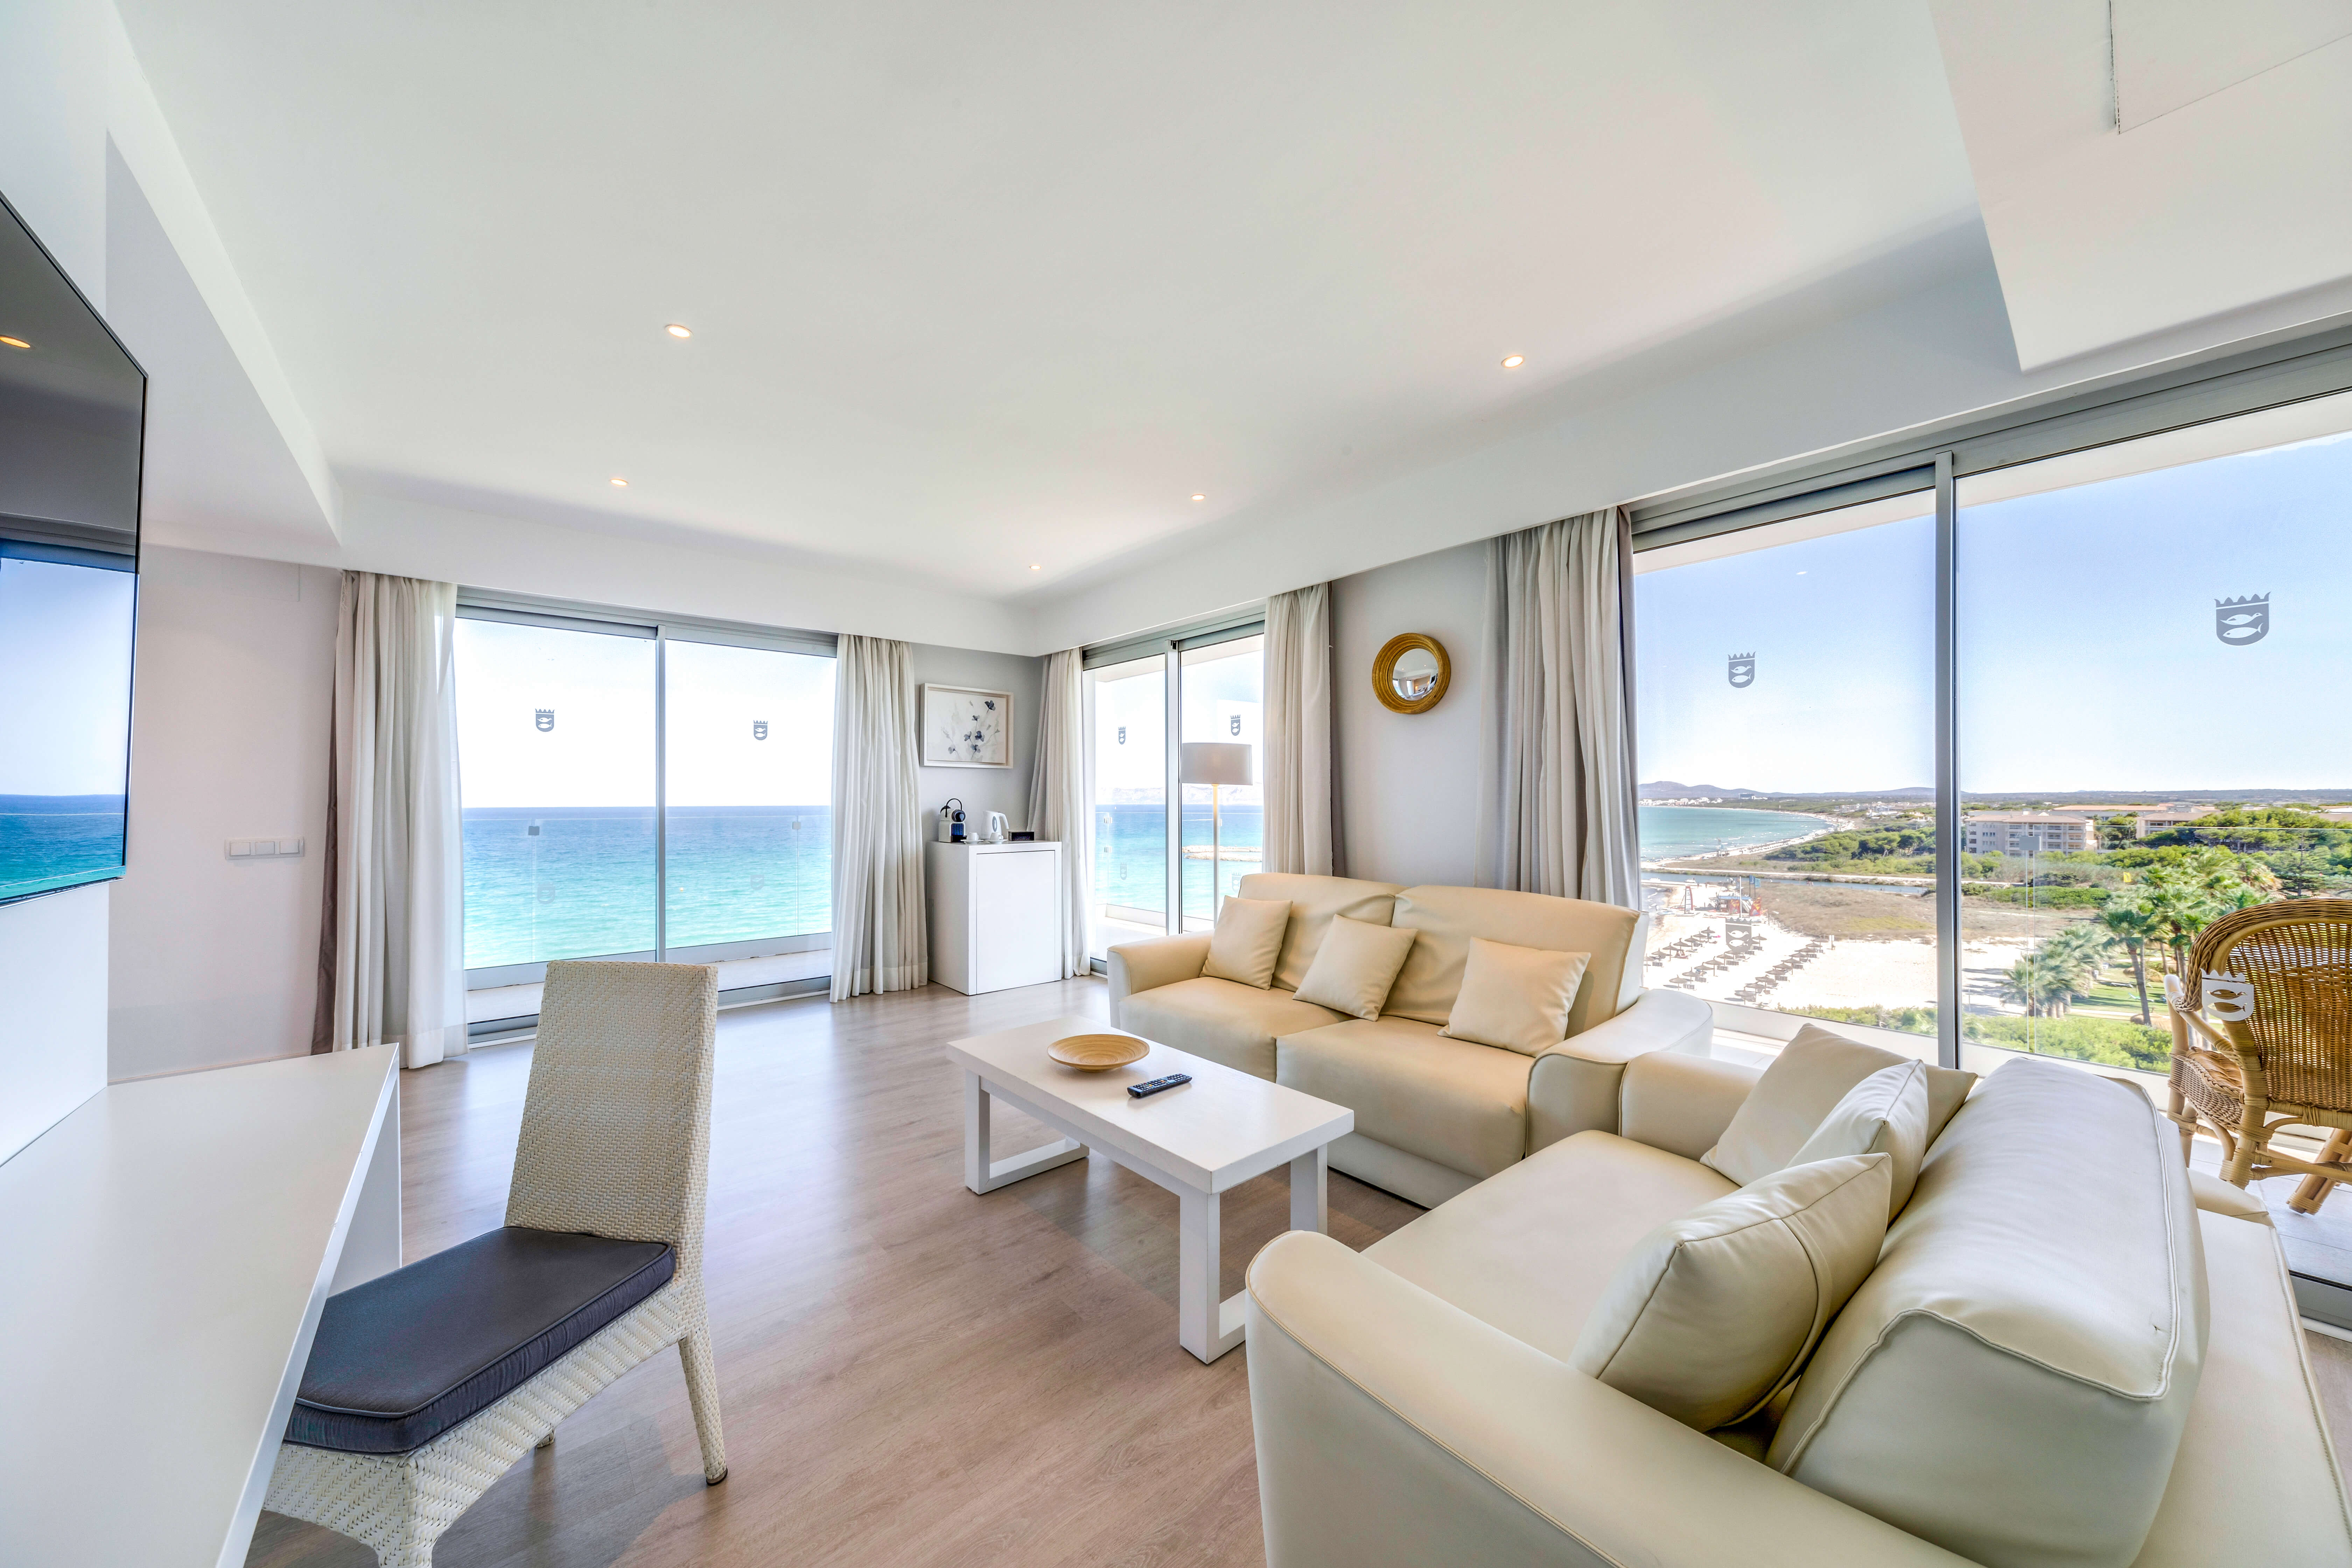 Royal Suite frontaler Meerblick